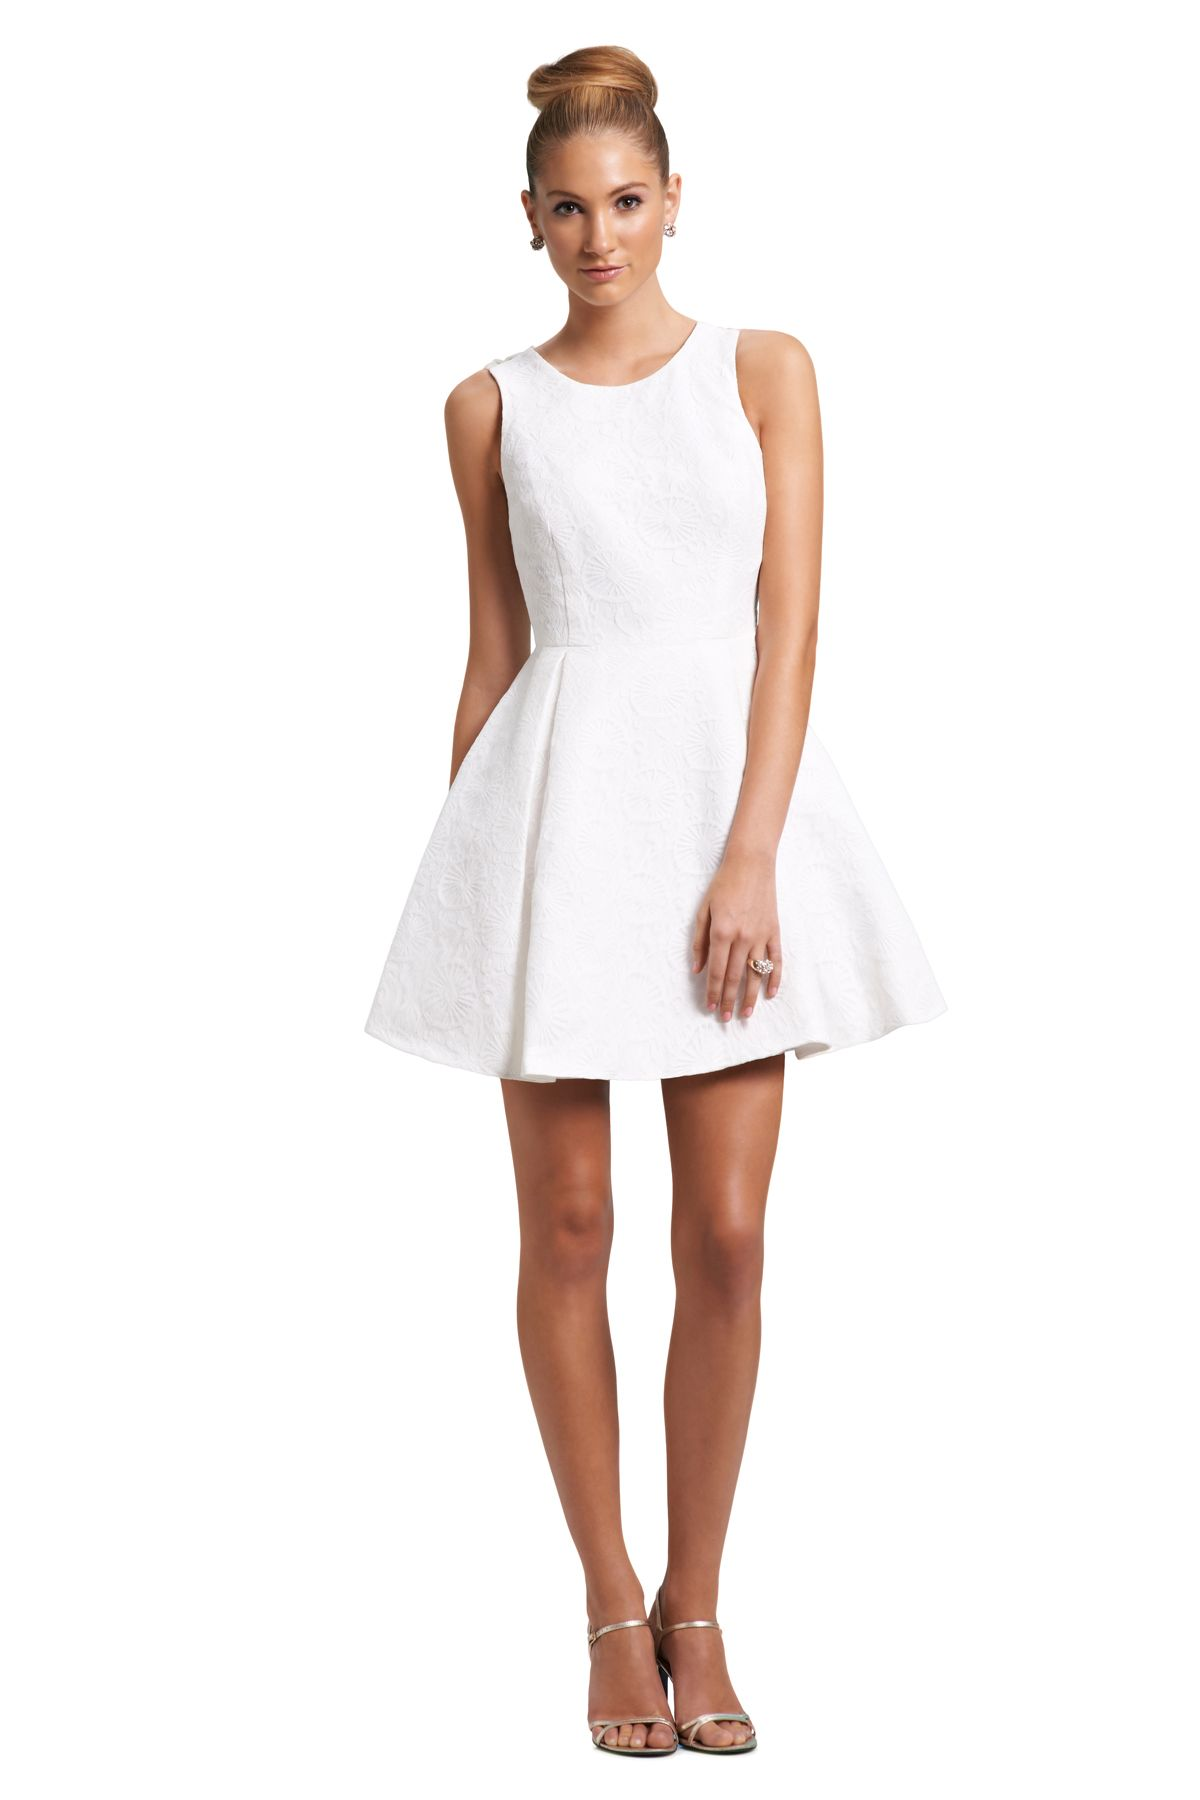 This Little White Dress from Weddington Way is elegant and ...